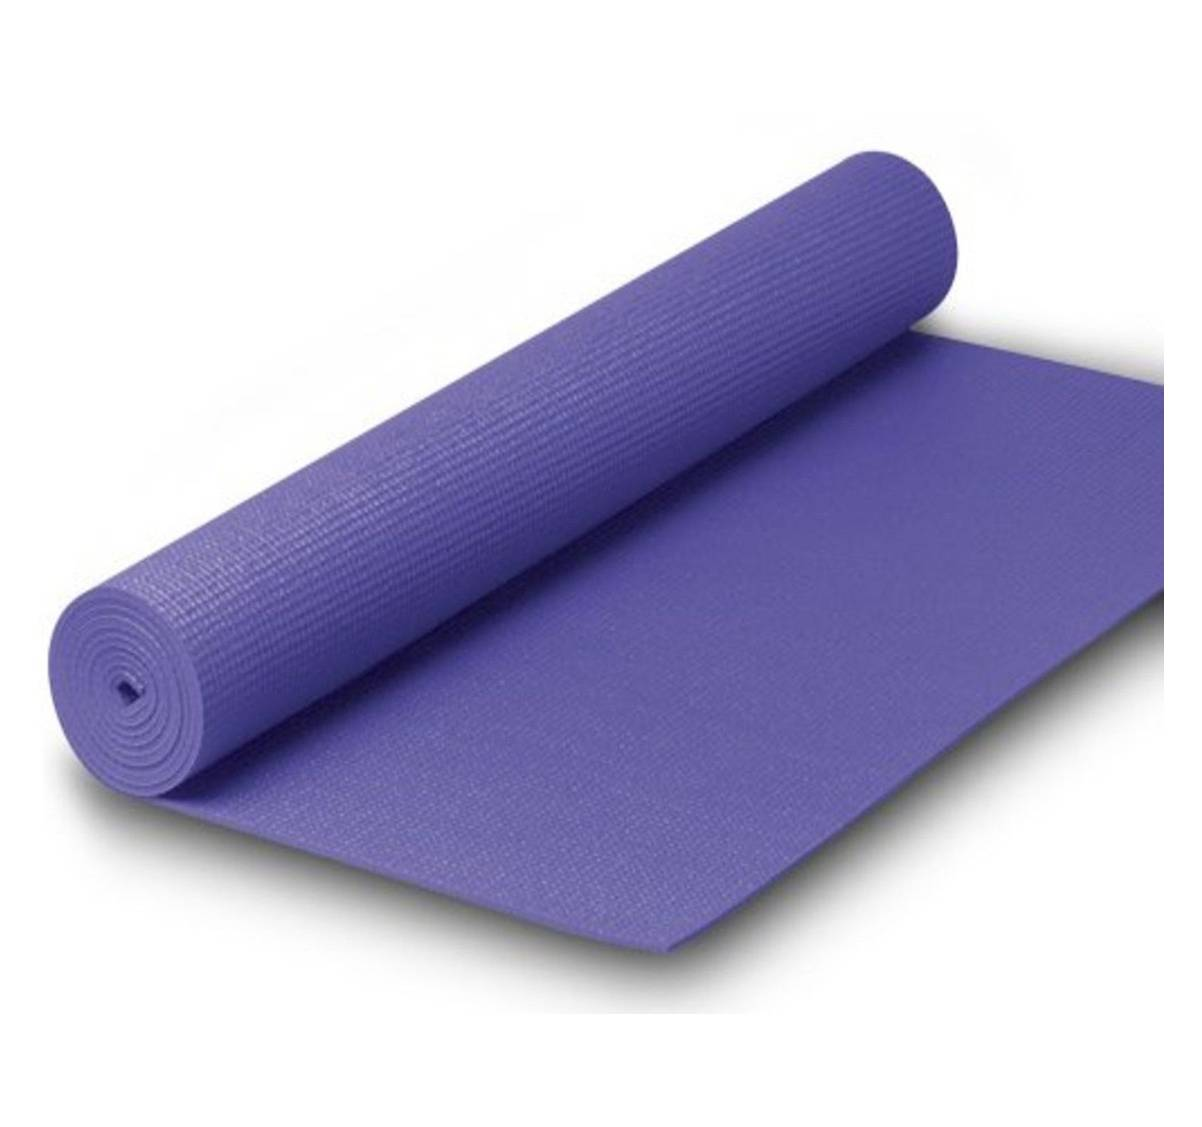 ultra s gaiam ebay mat inflowcomponent sticky p content inflow yoga technicalissues res purple global mats